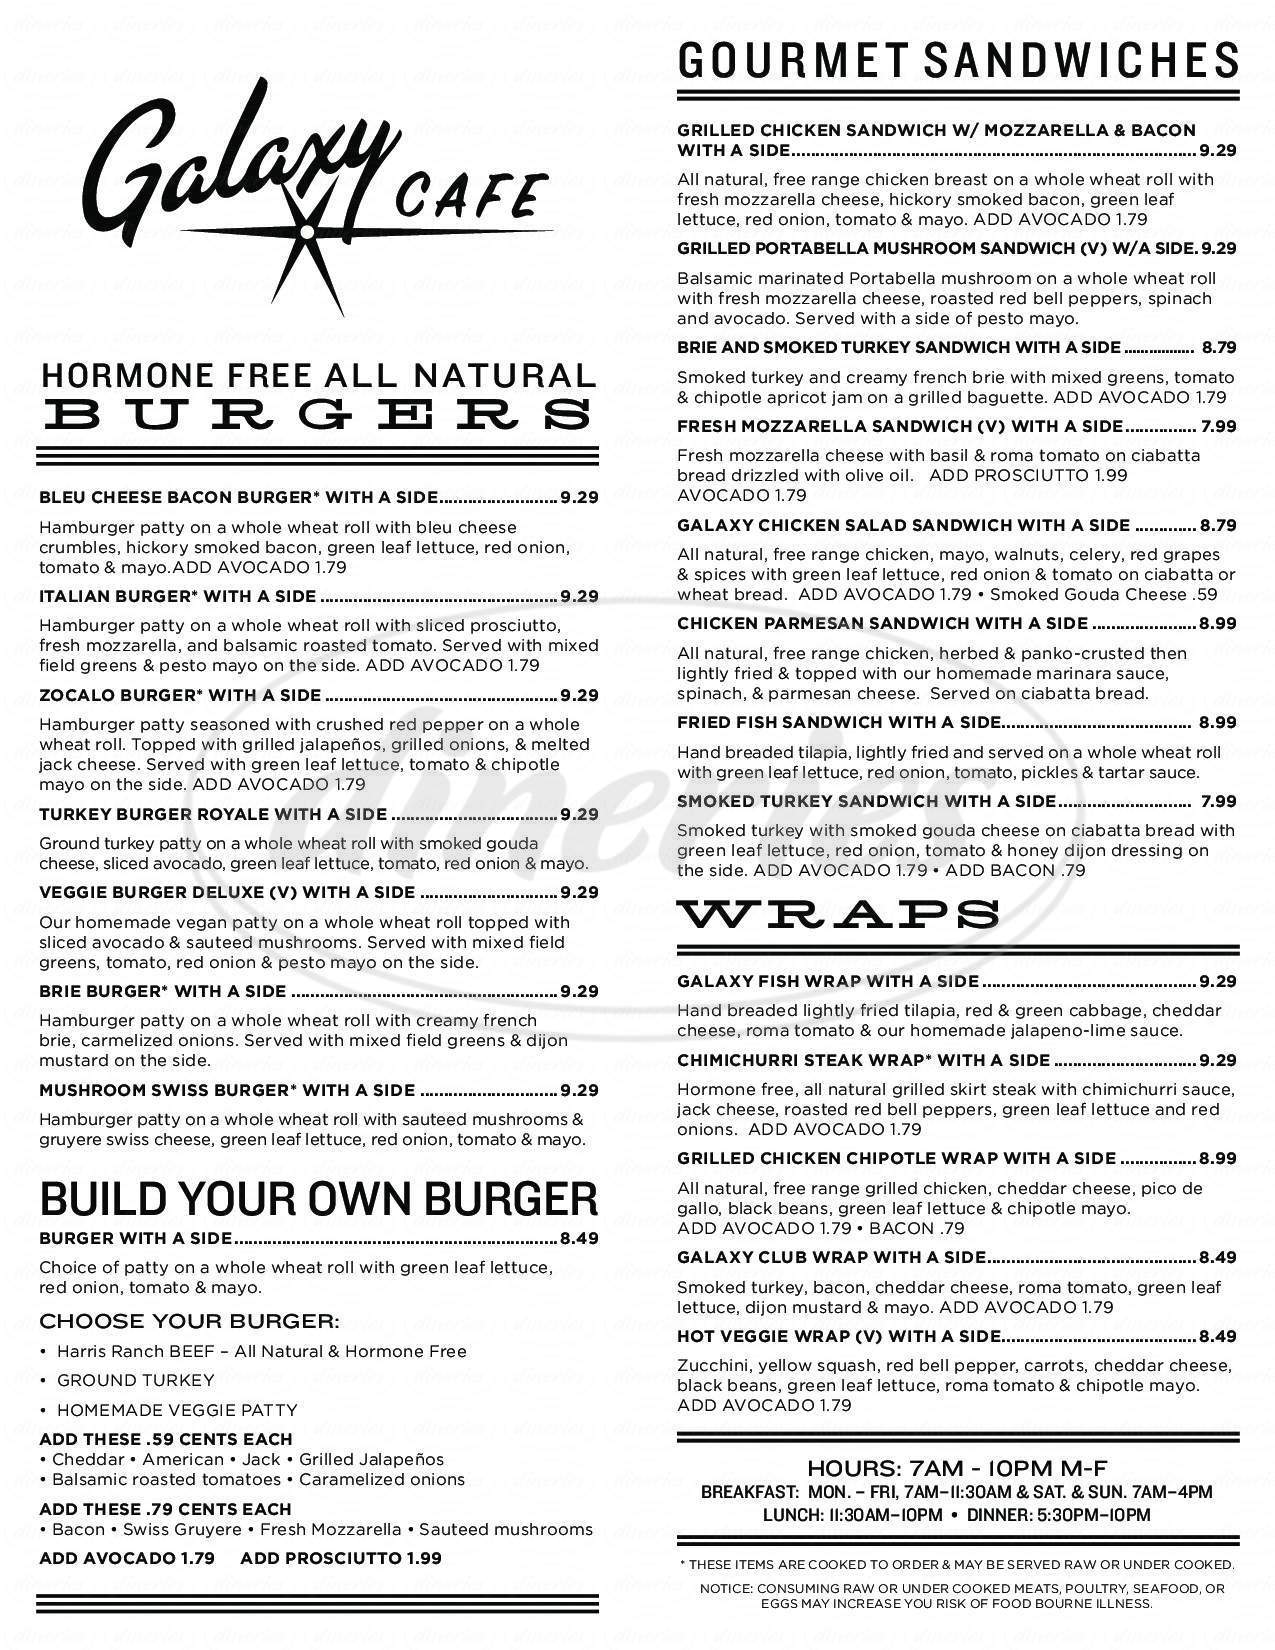 menu for Galaxy Café